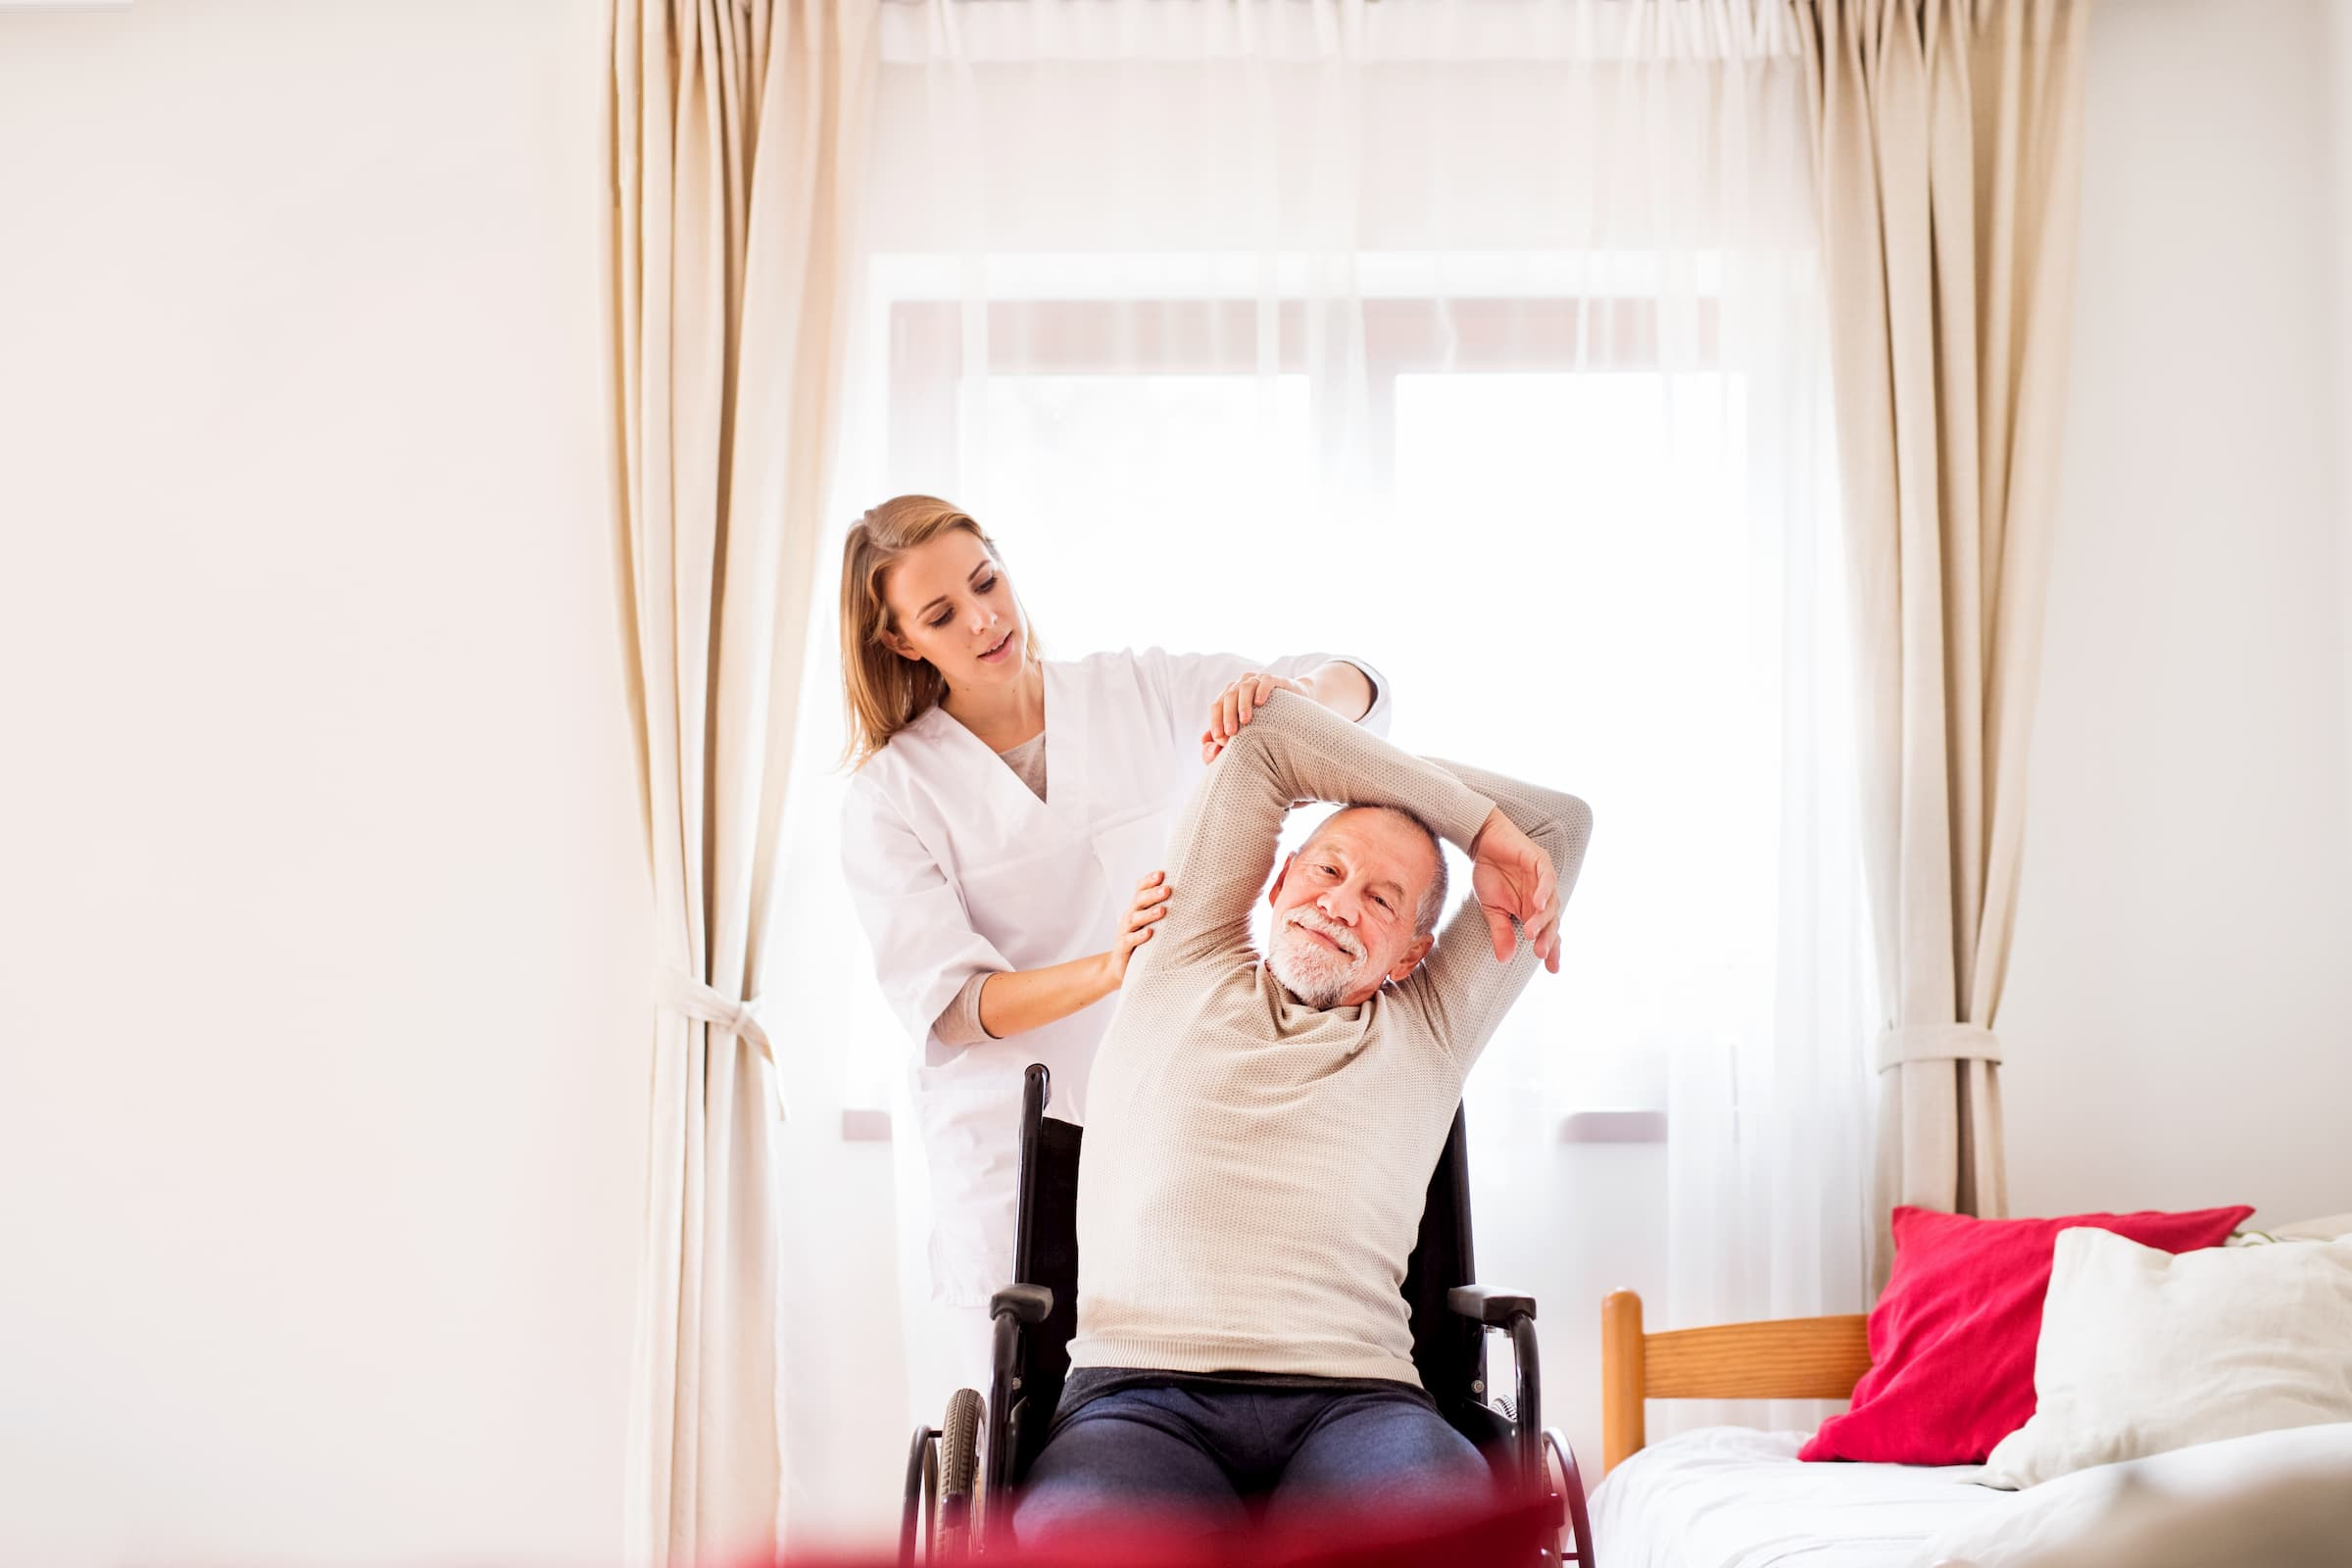 white nurse helping white senior man stretch during inpatient rehab while in wheelchair in patient room at hospital facility